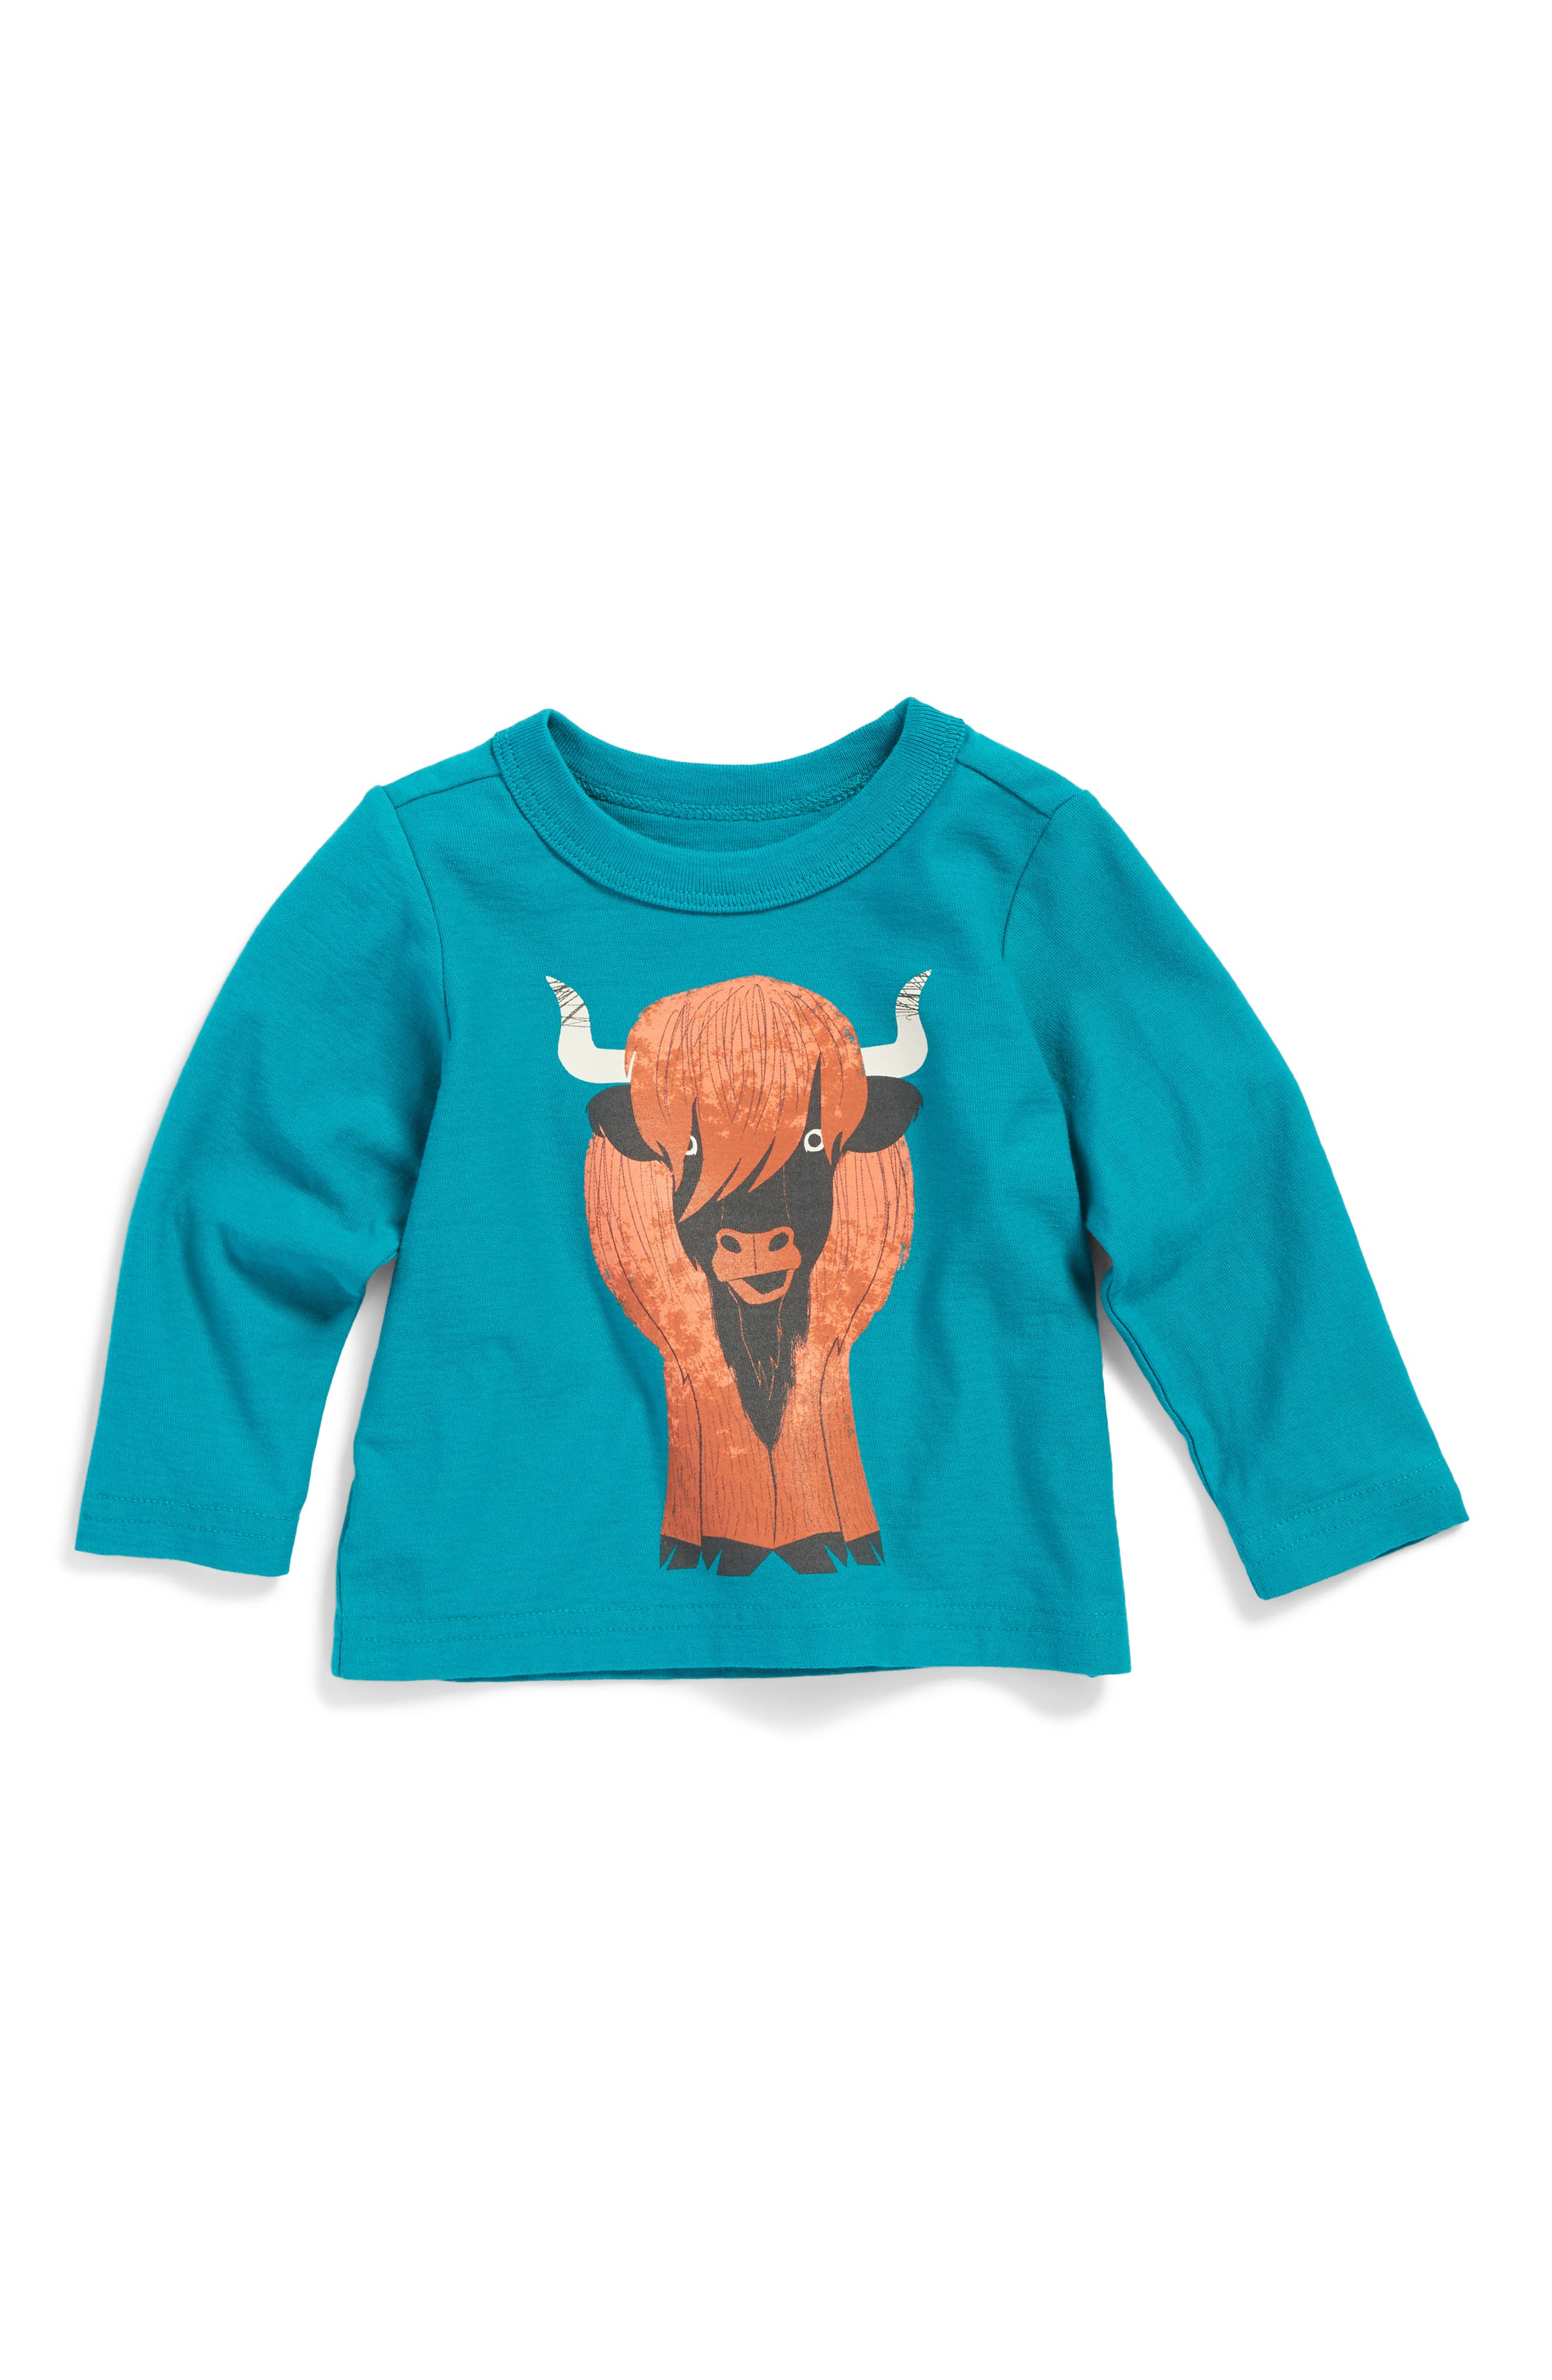 Heeland Coo Graphic T-Shirt,                         Main,                         color, Tempo Teal